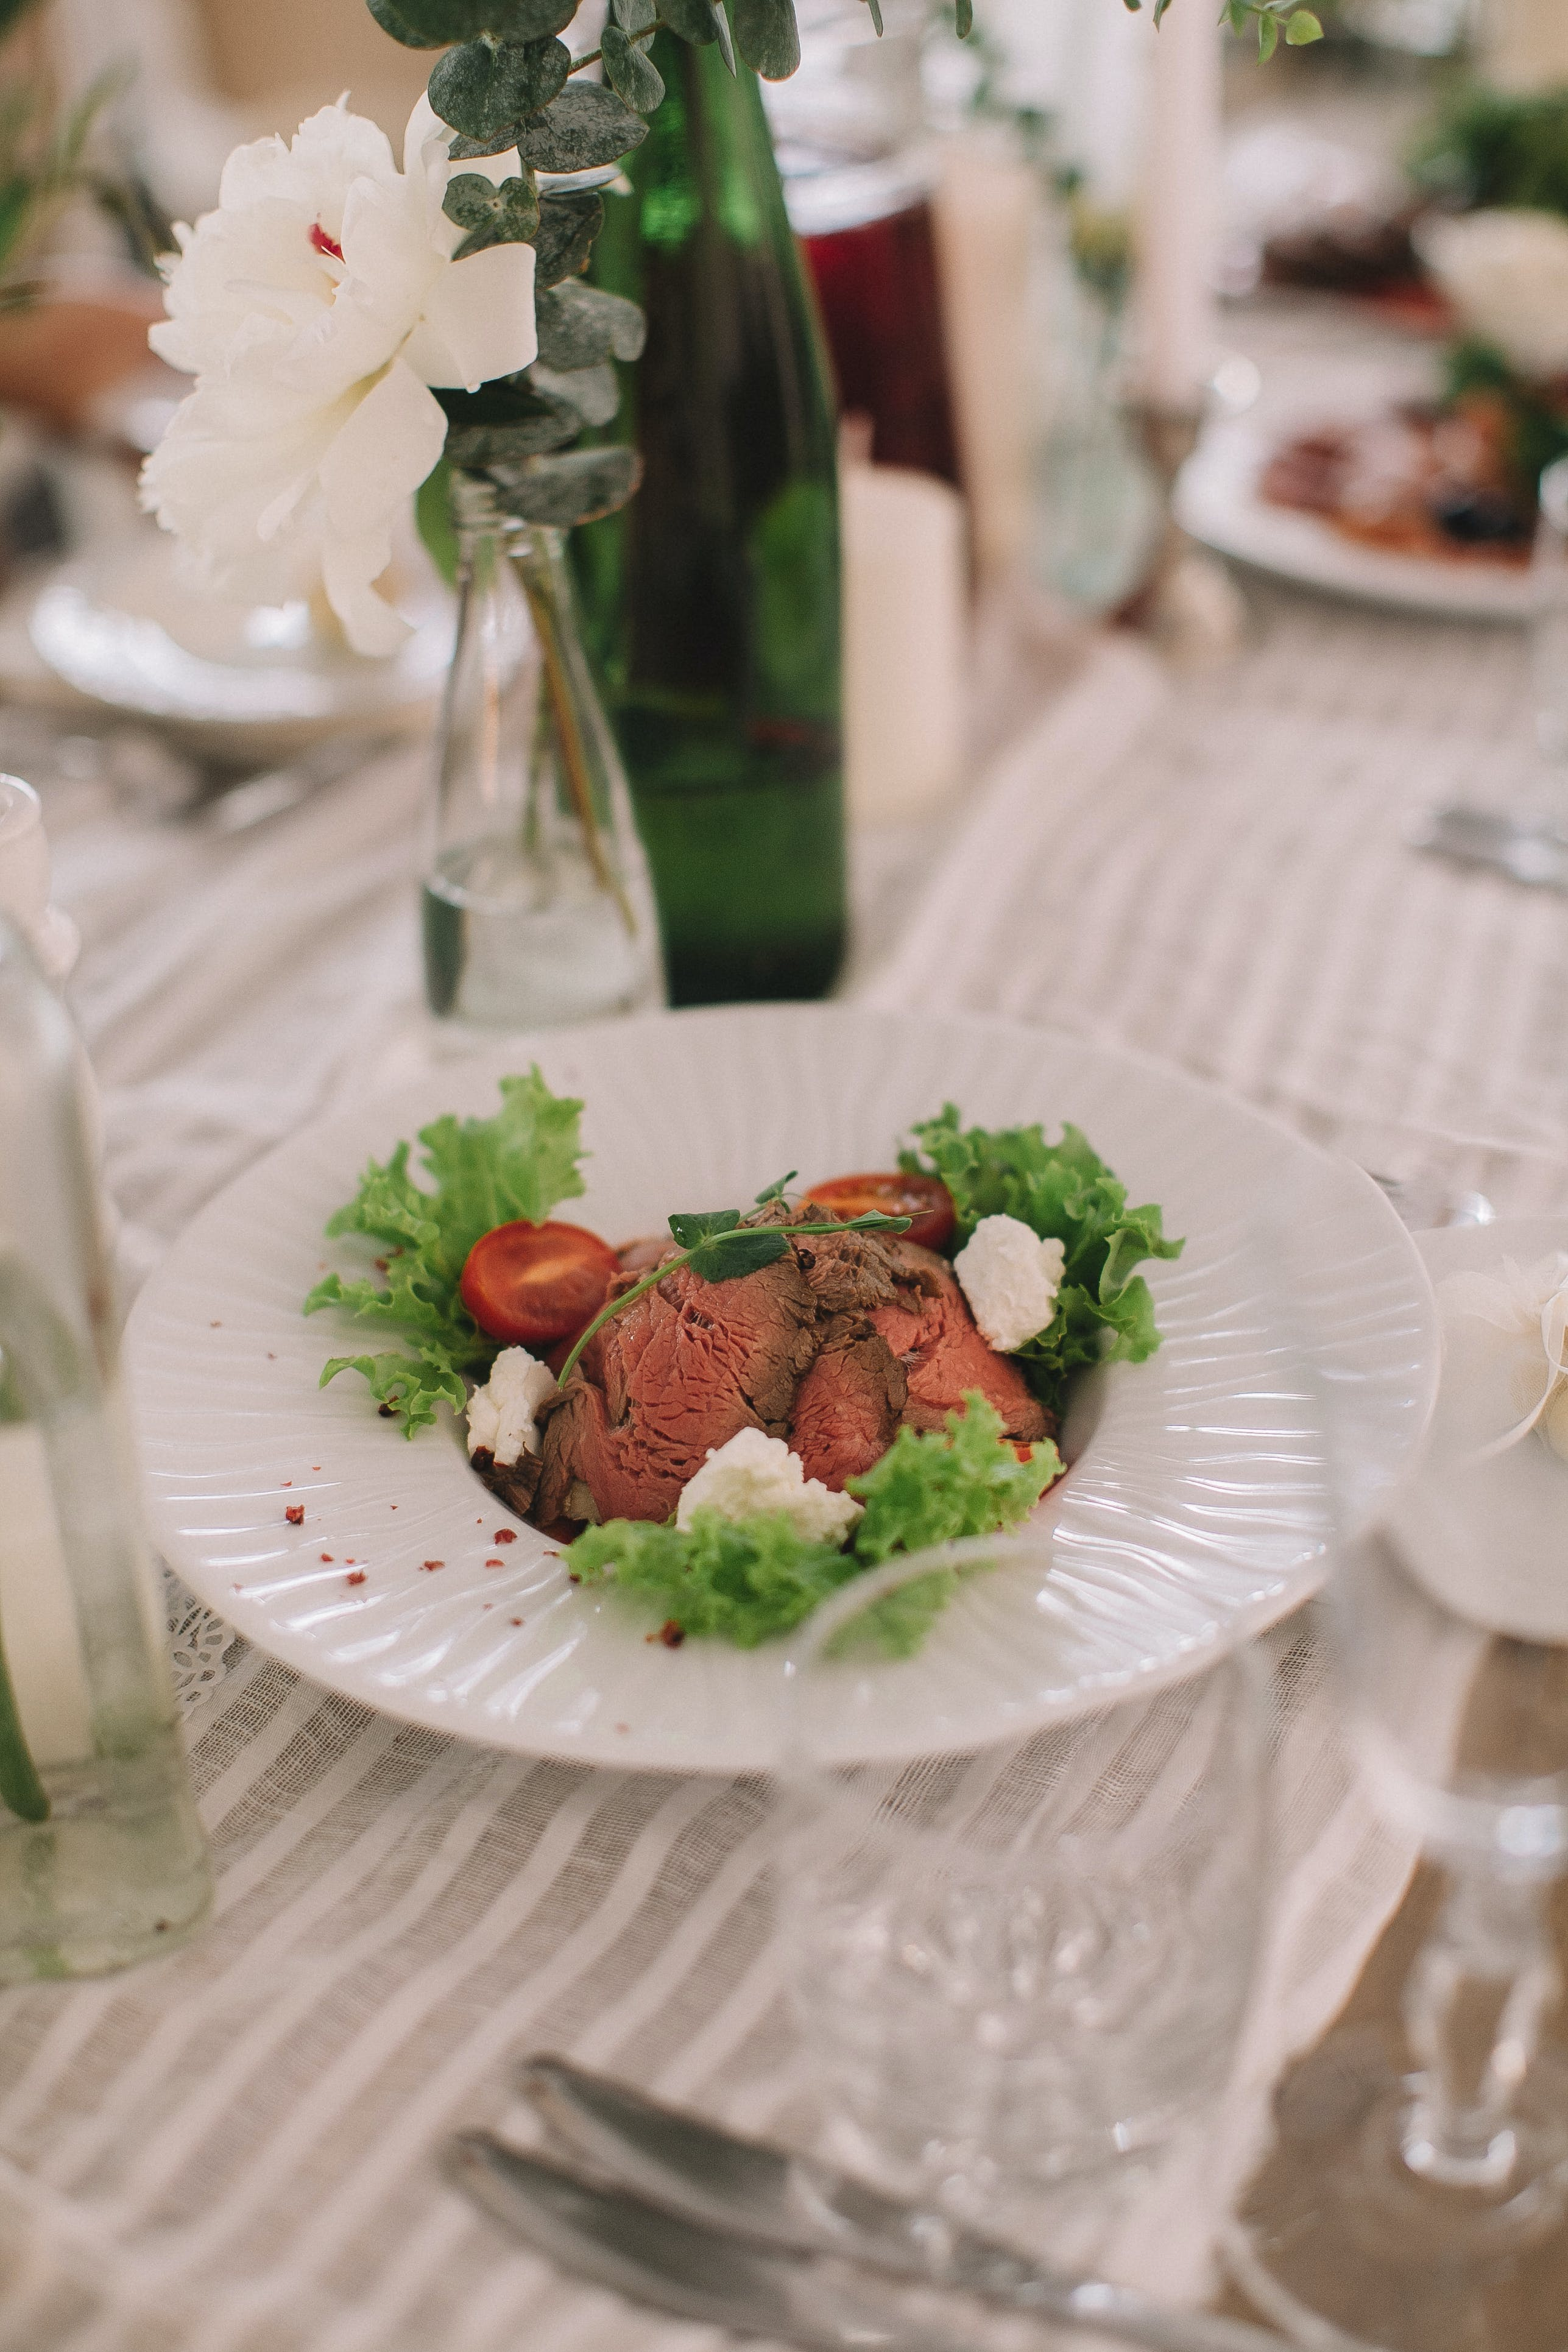 Cooked Meat With Vegetables on White Plate